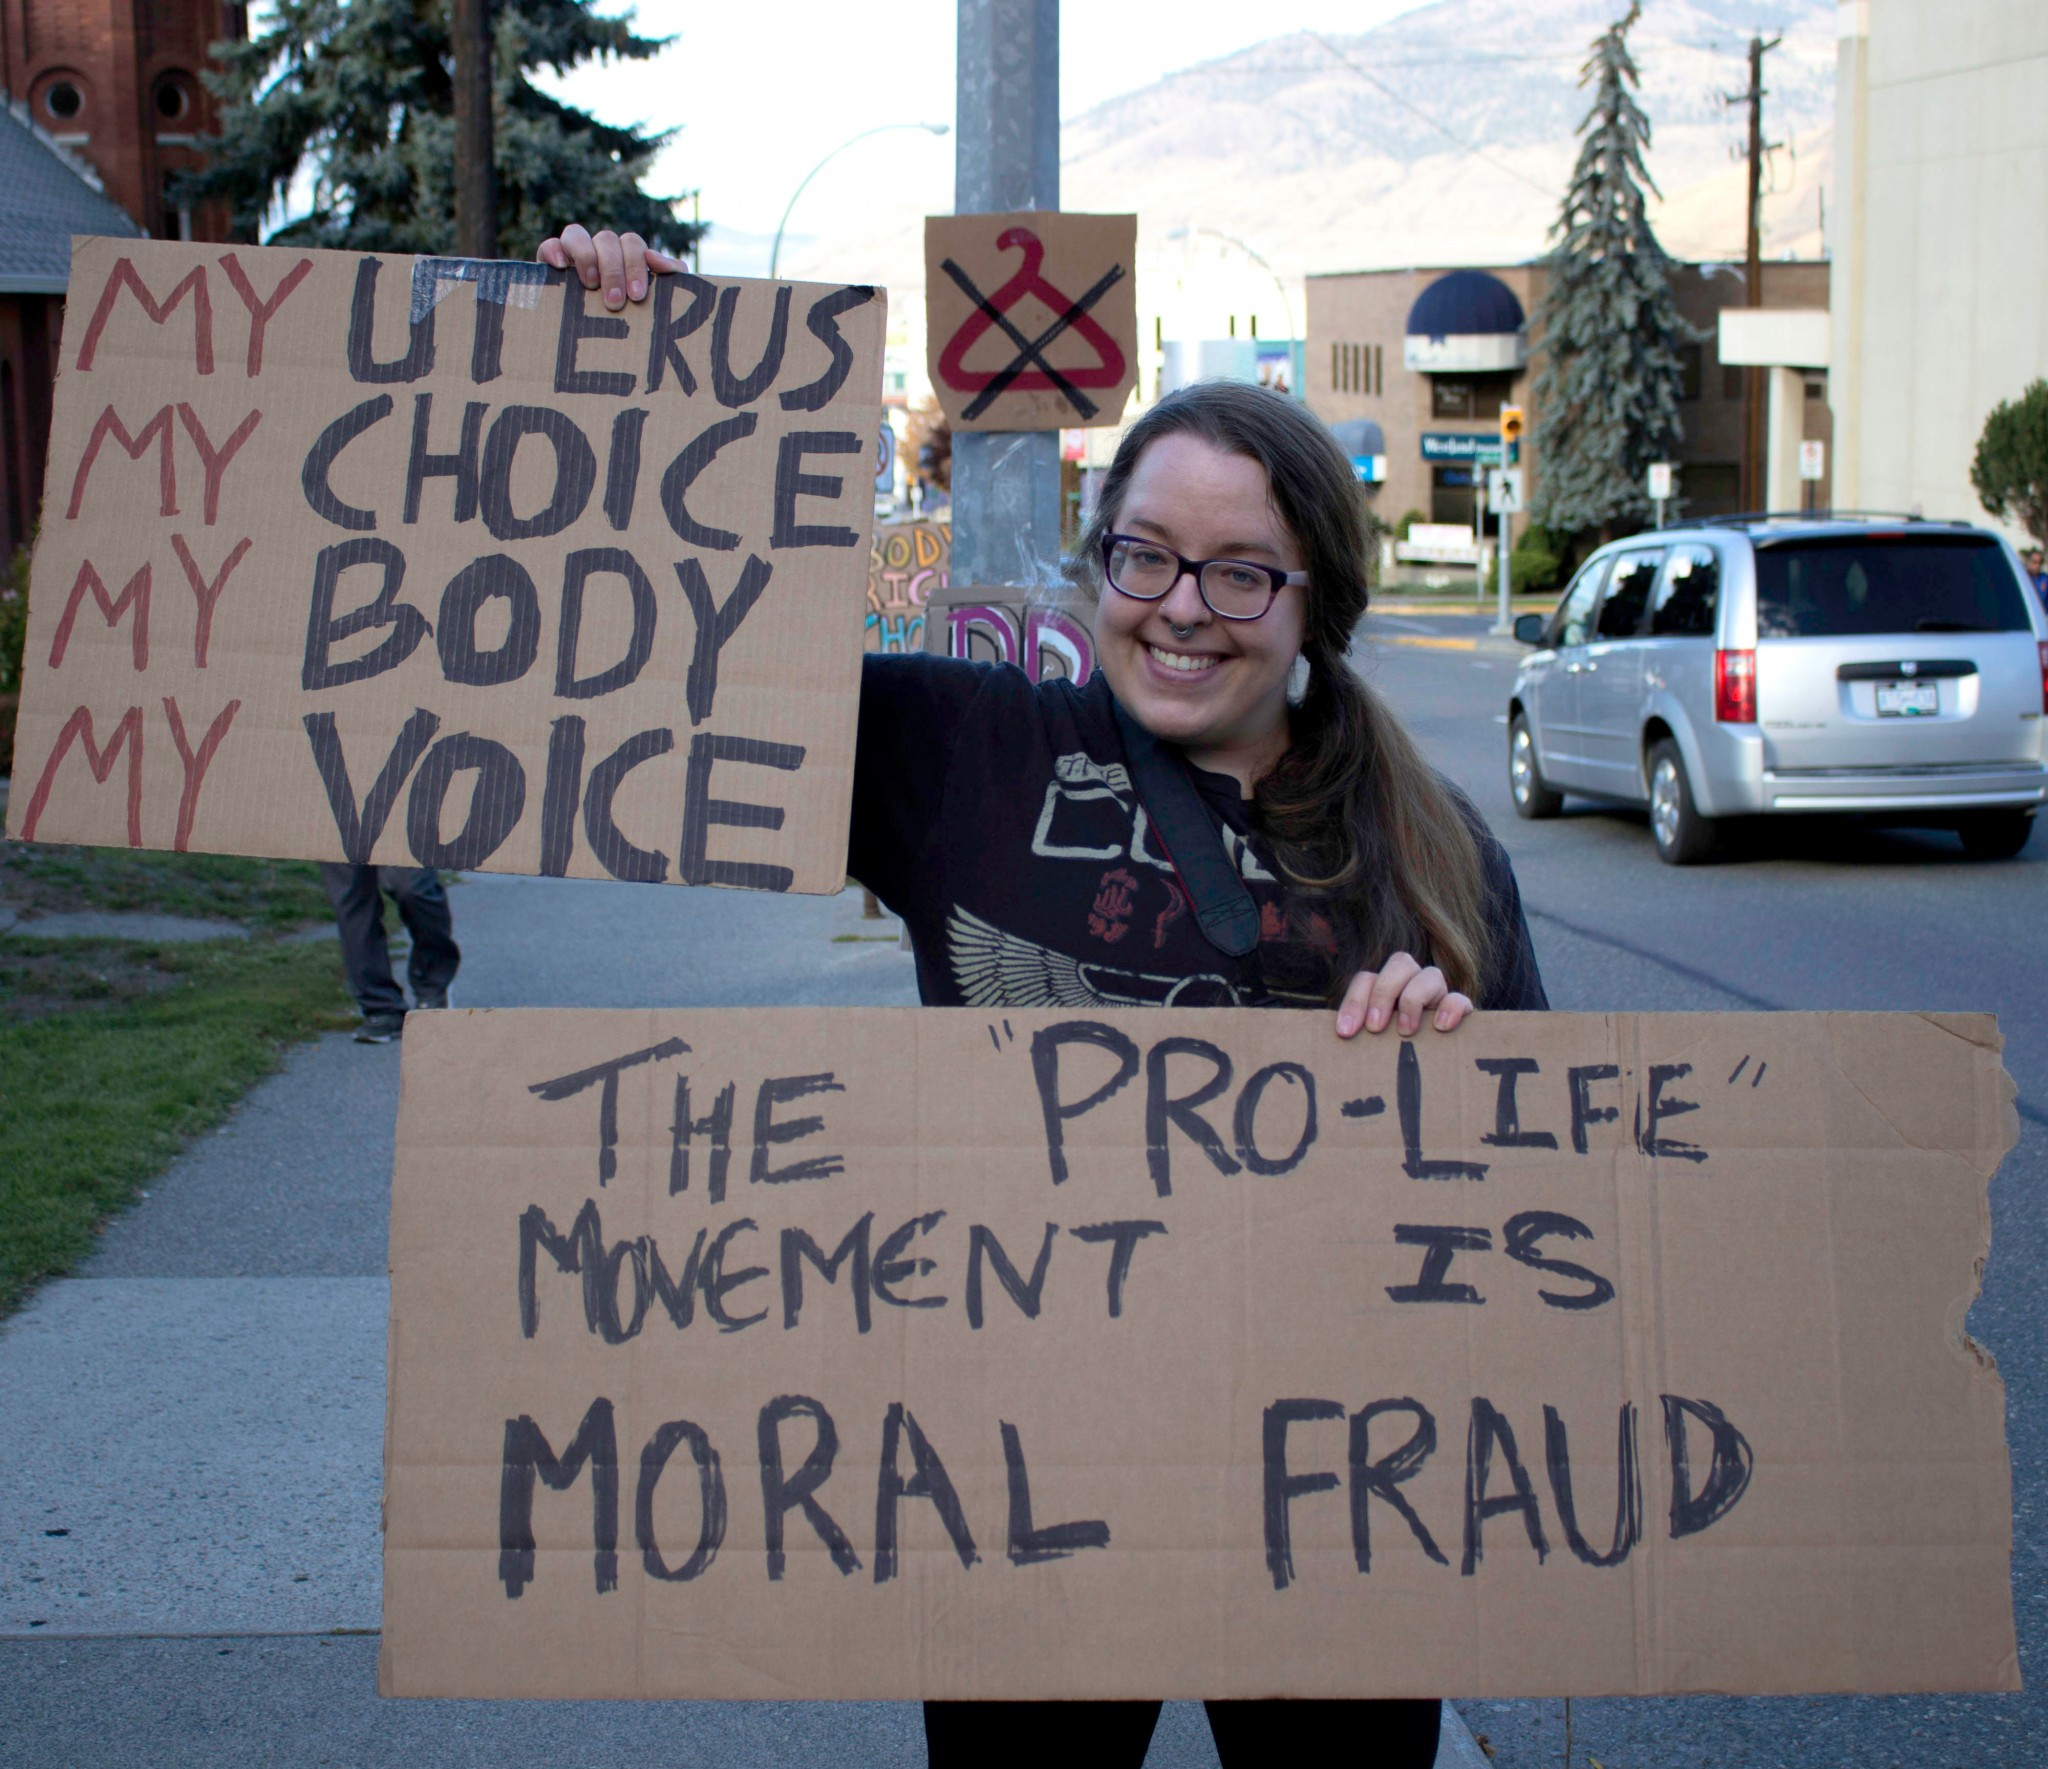 Backyard Abortion: Pro-life, Pro-choice Groups Demonstrate In Front Of Church